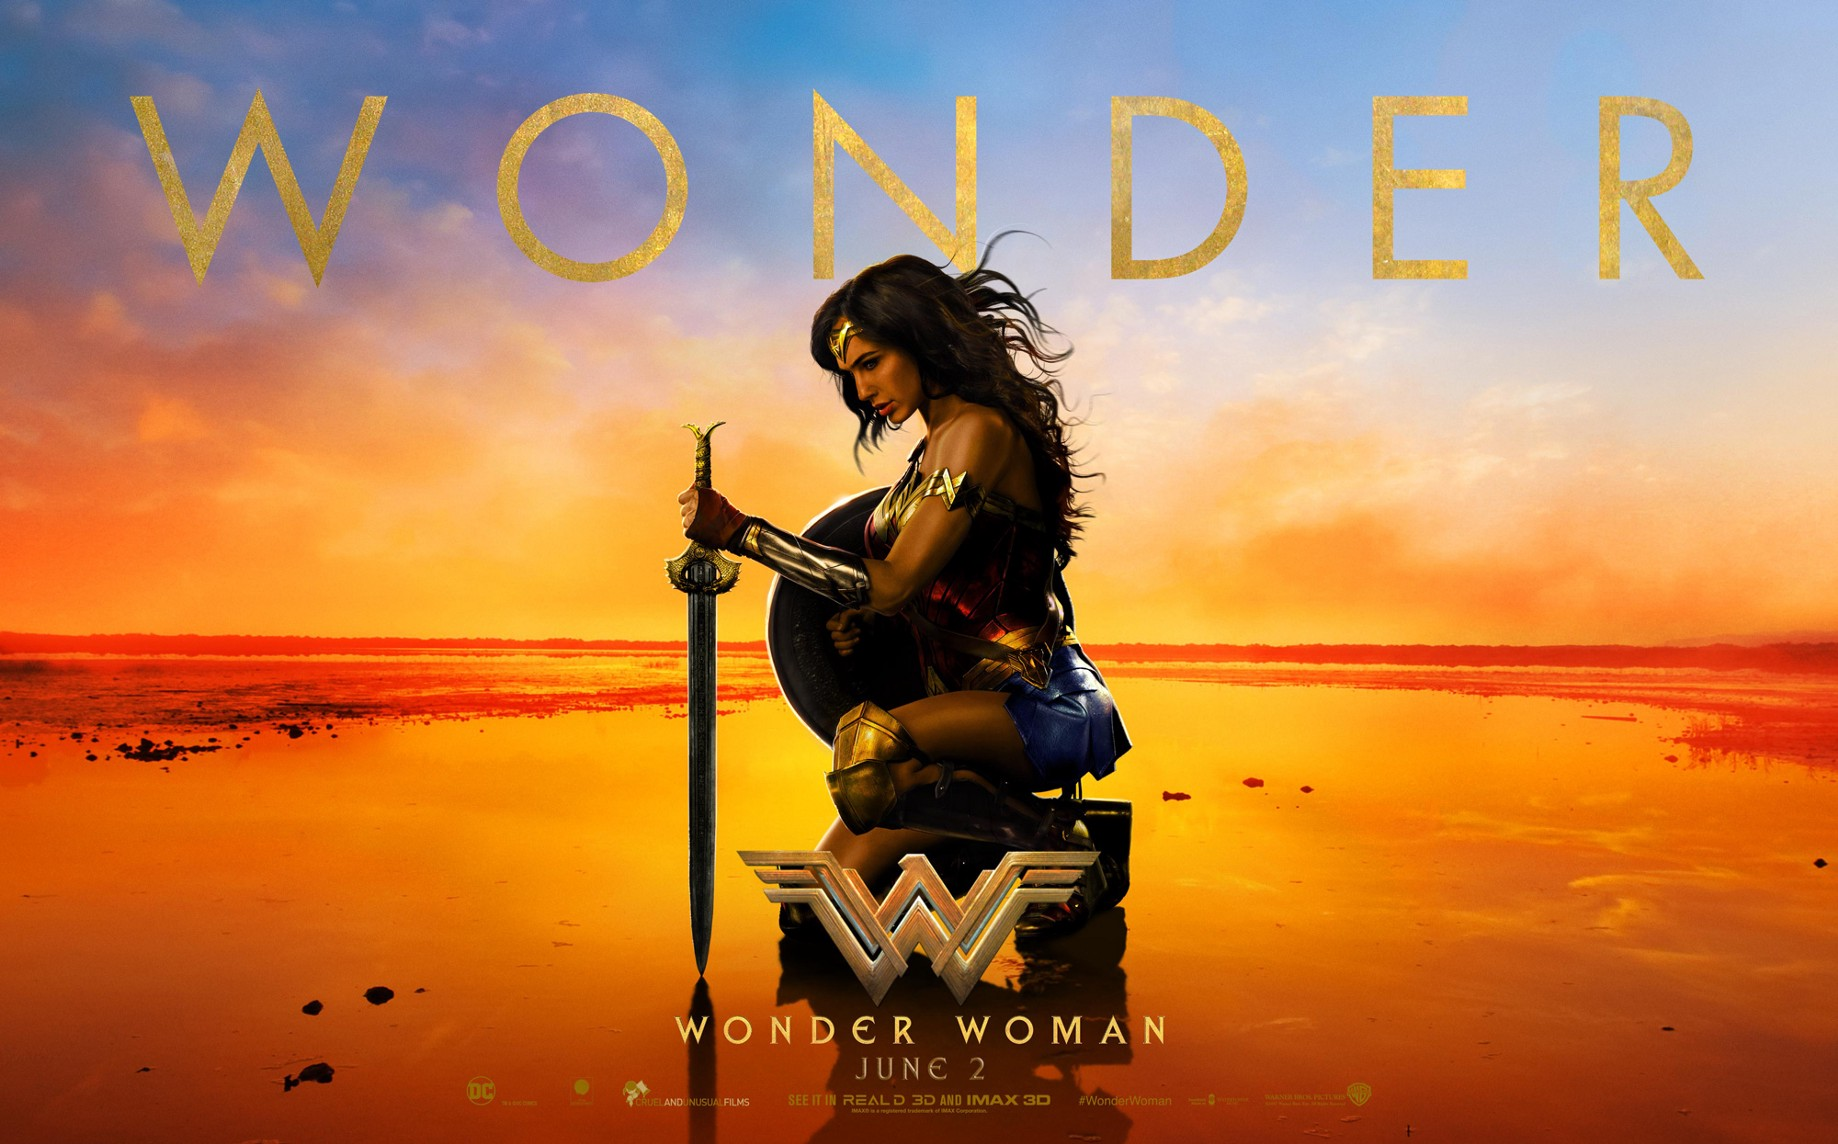 What Do You Believe?: War and Peace in Wonder Woman